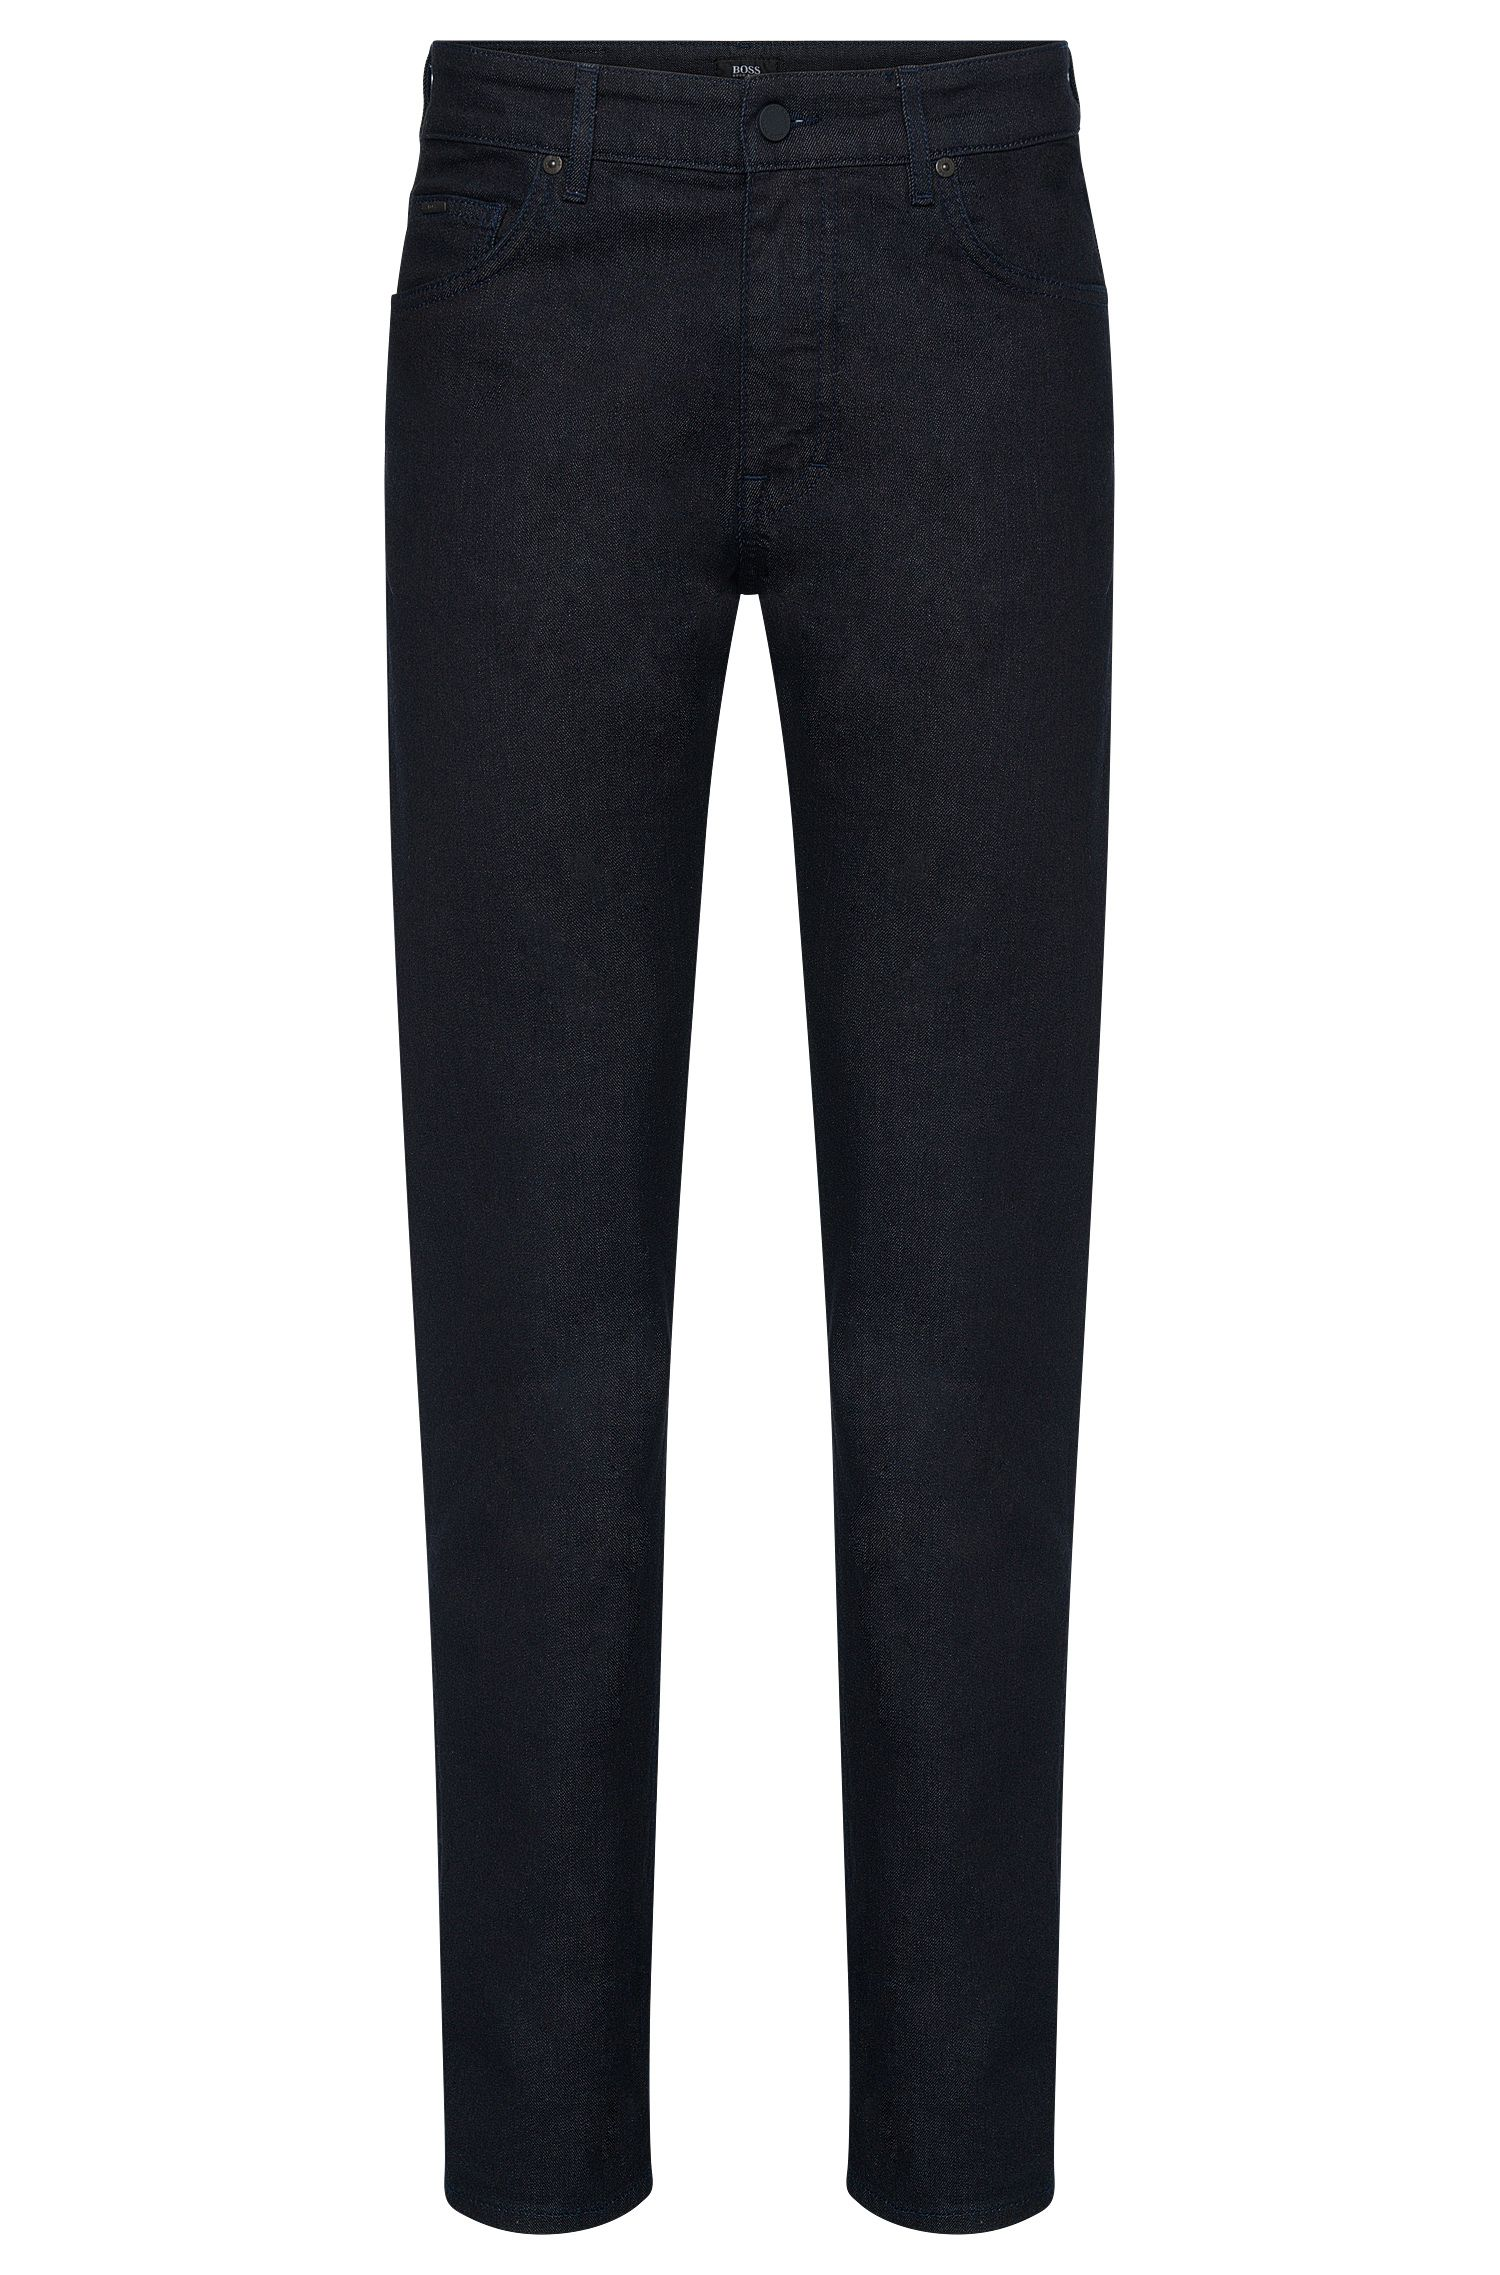 11 oz Stretch Cotton Jeans, Relaxed Fit | Albany